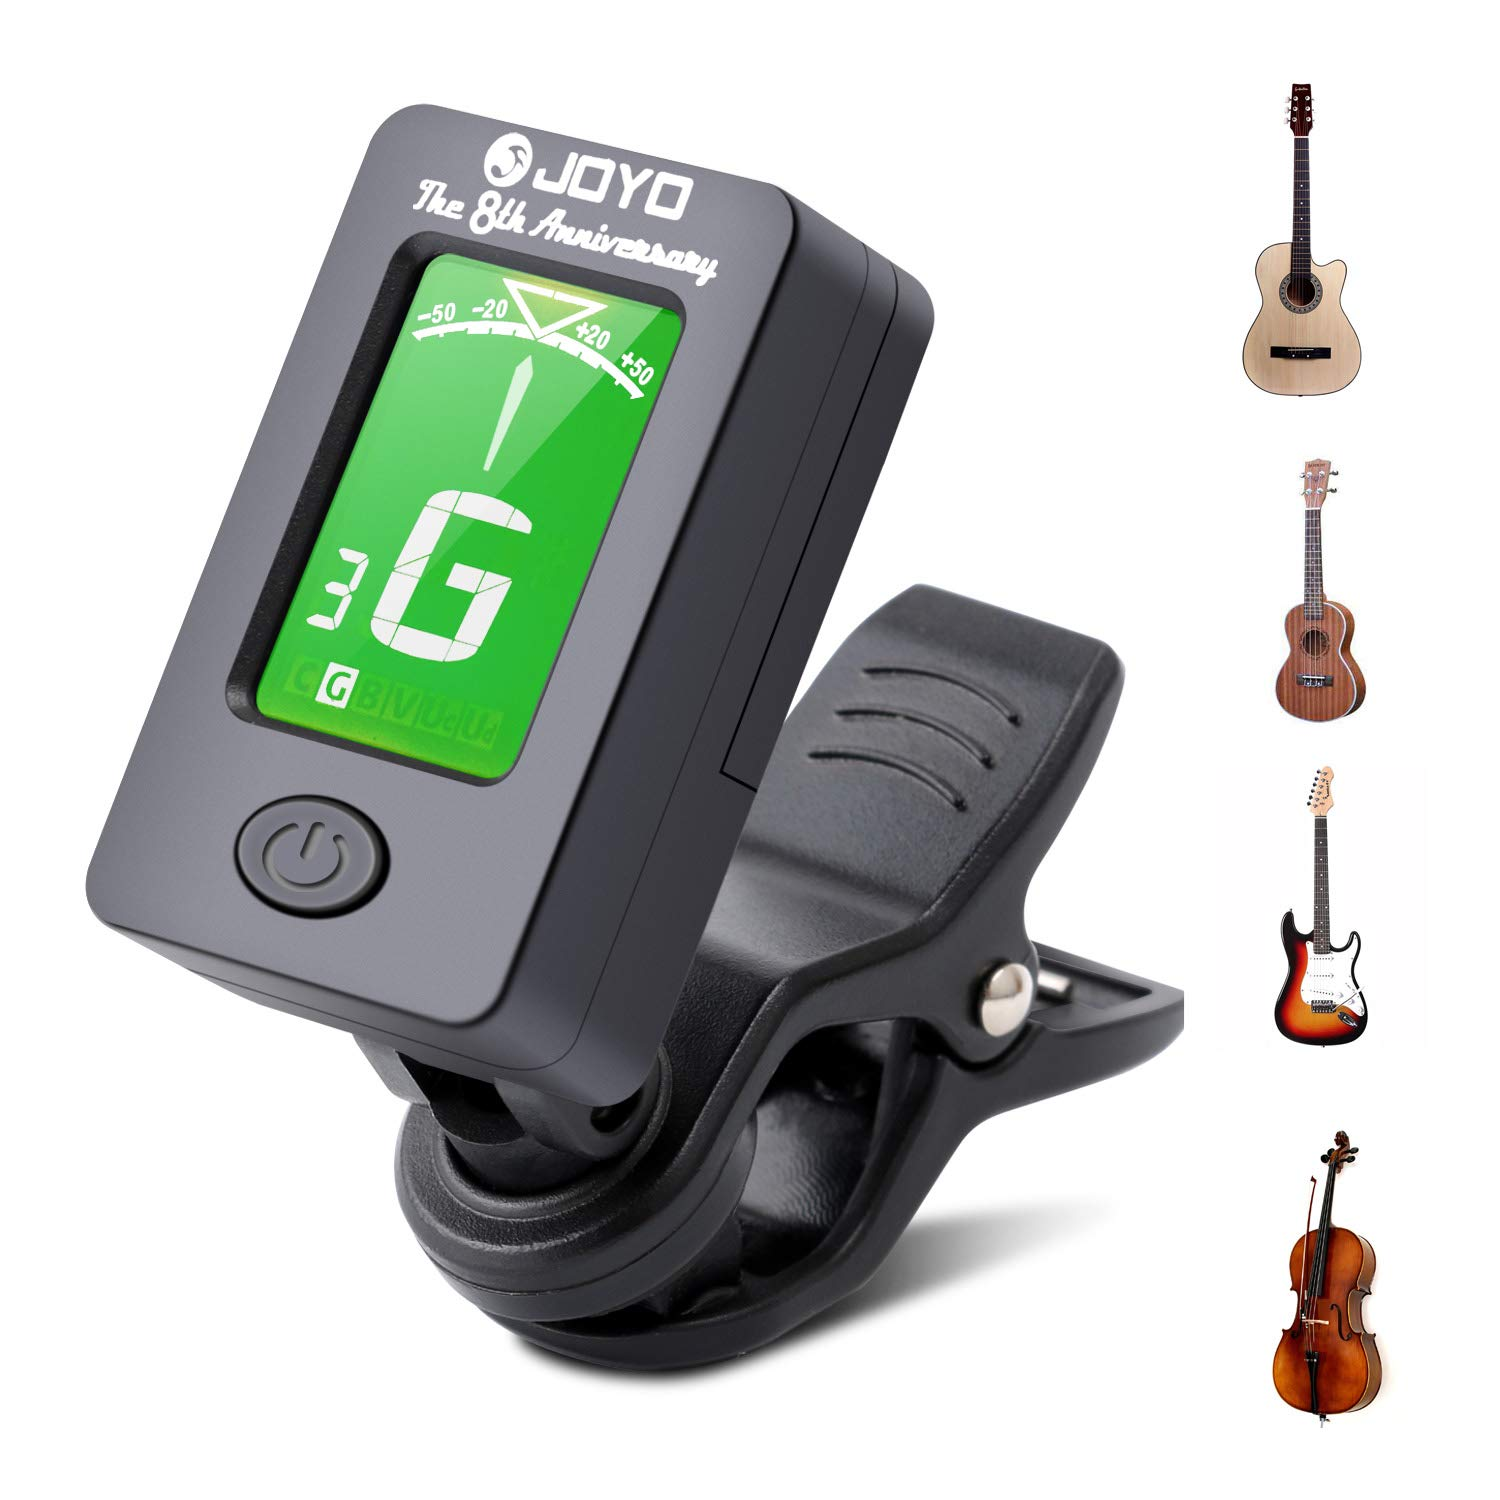 Debonice Accordeur de Guitare,Violon,Ukulélé Accordeur Chromatique à Pince avec Écran LCD 360°Rotation